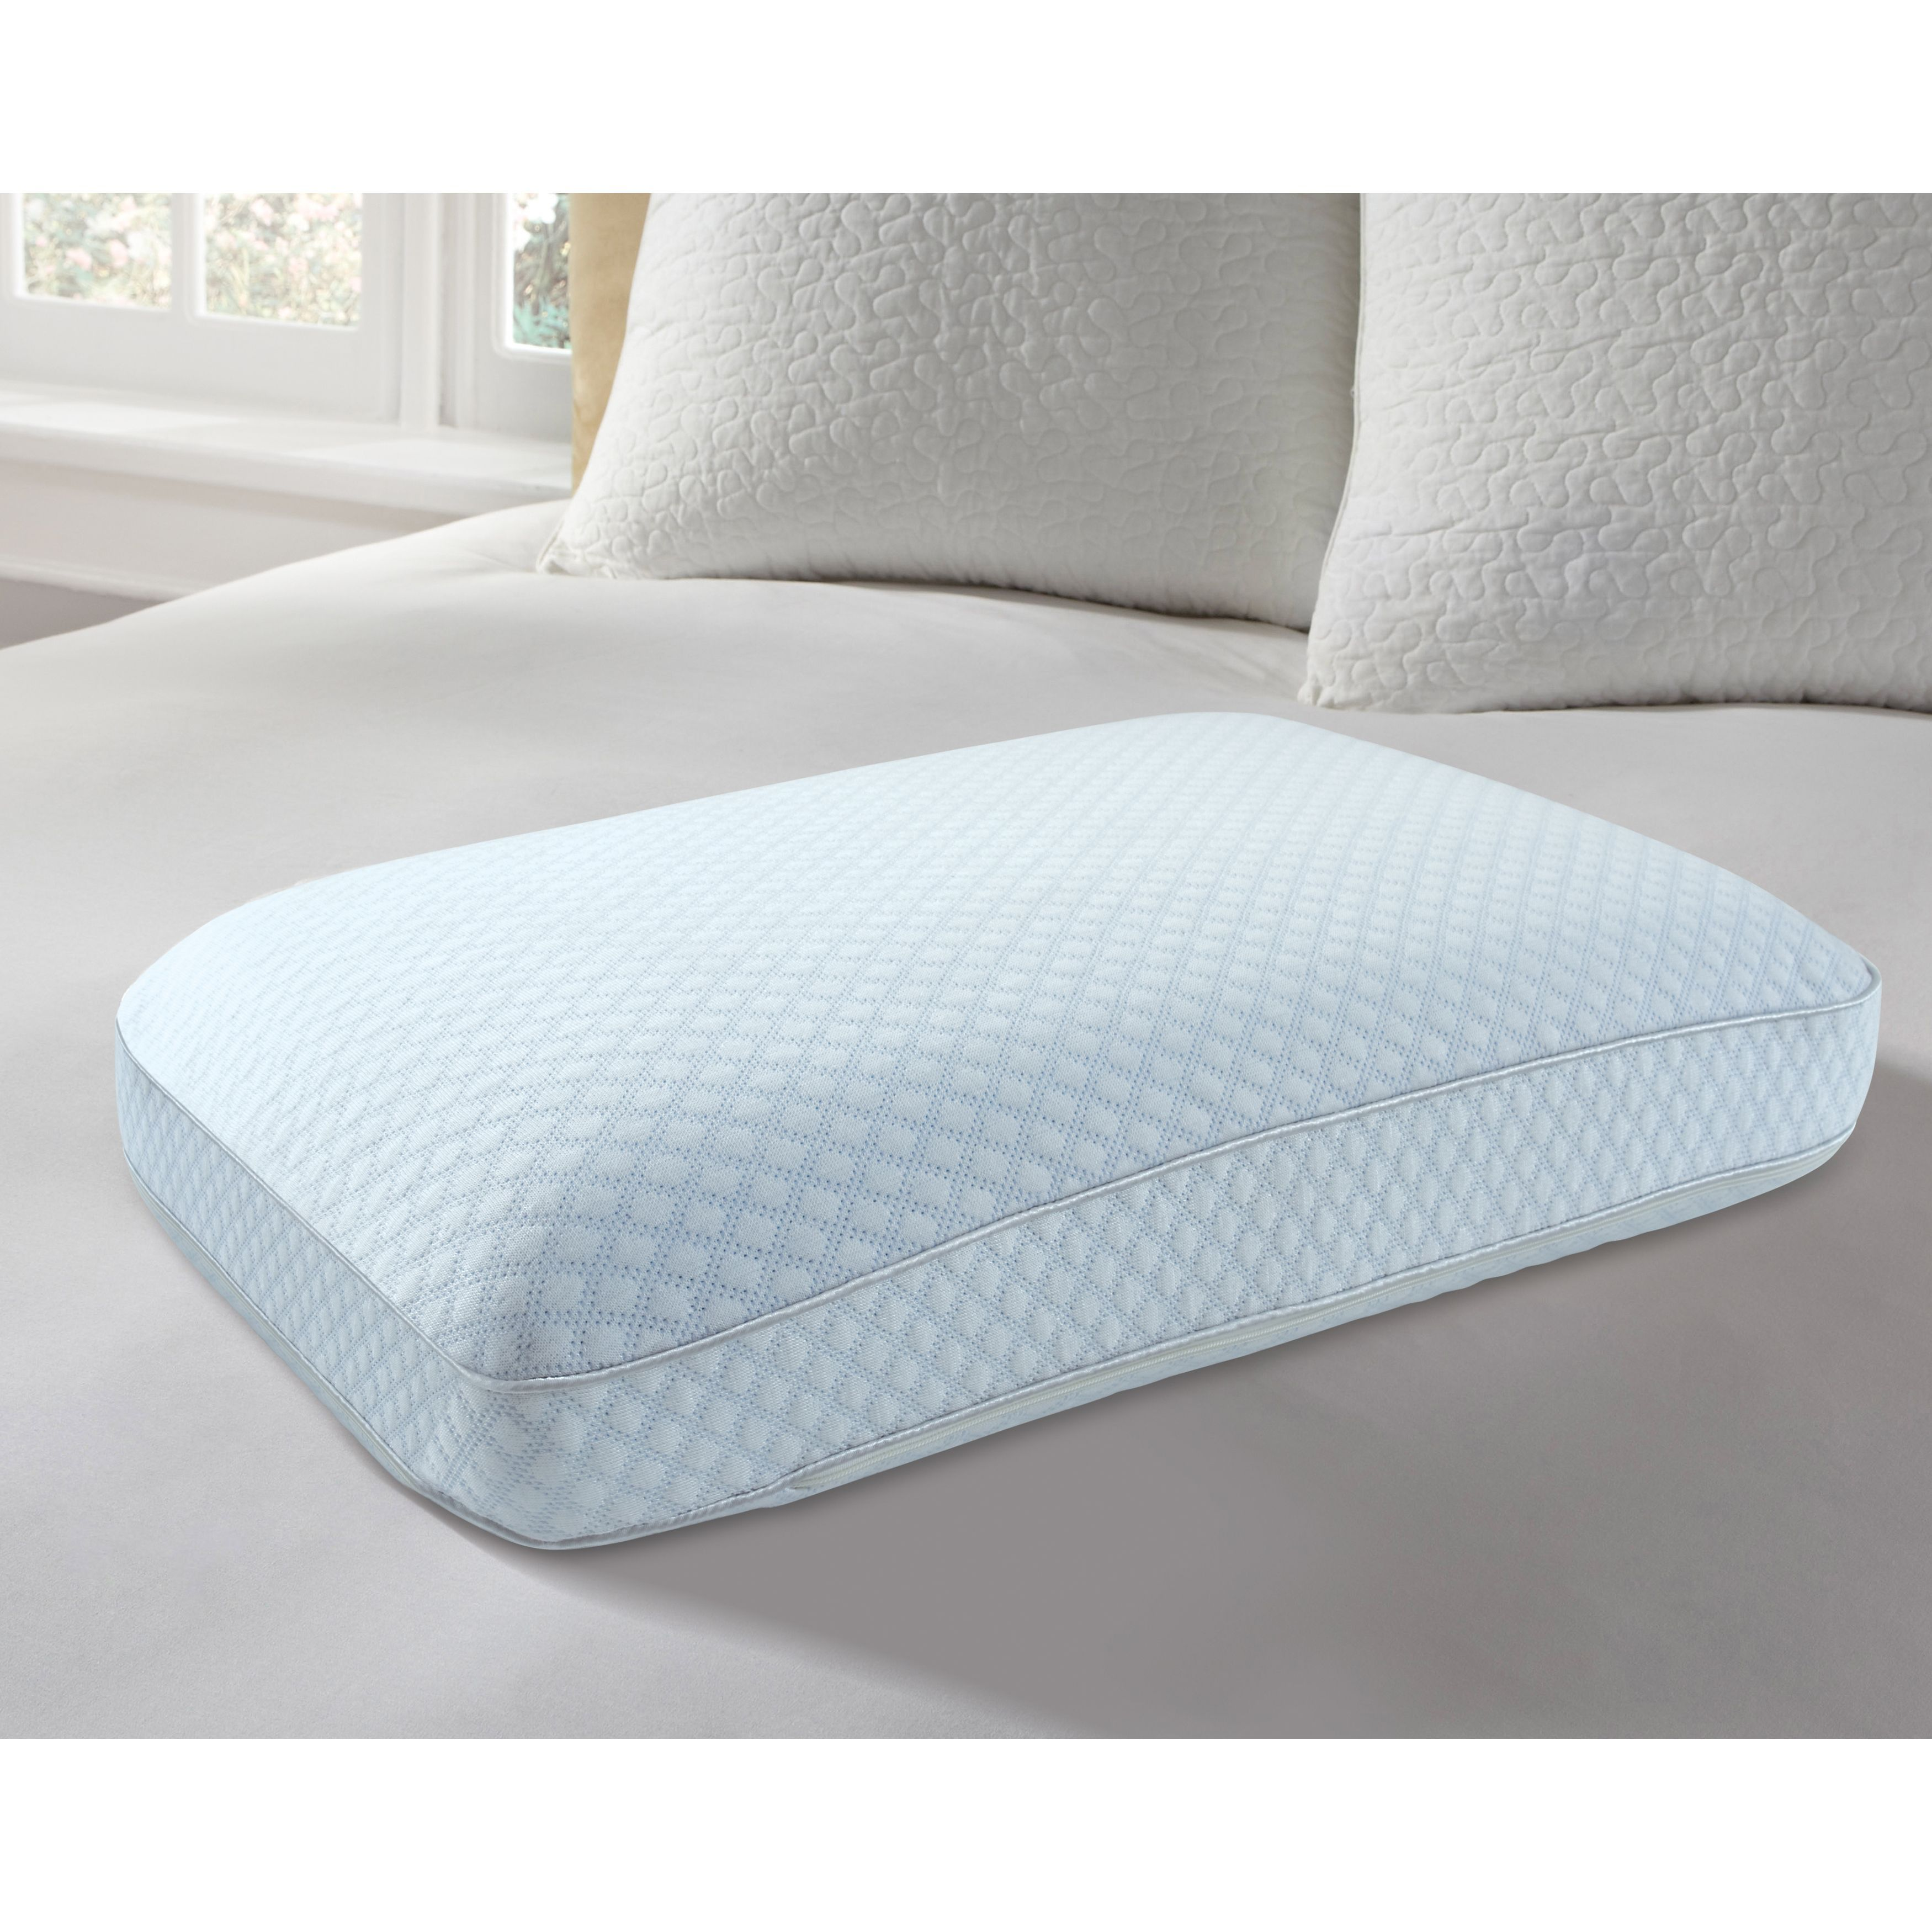 turn are support cooling as full movement cradles technogel lab to pillows back pillow while and sleeper you your side allows easy cover on head for